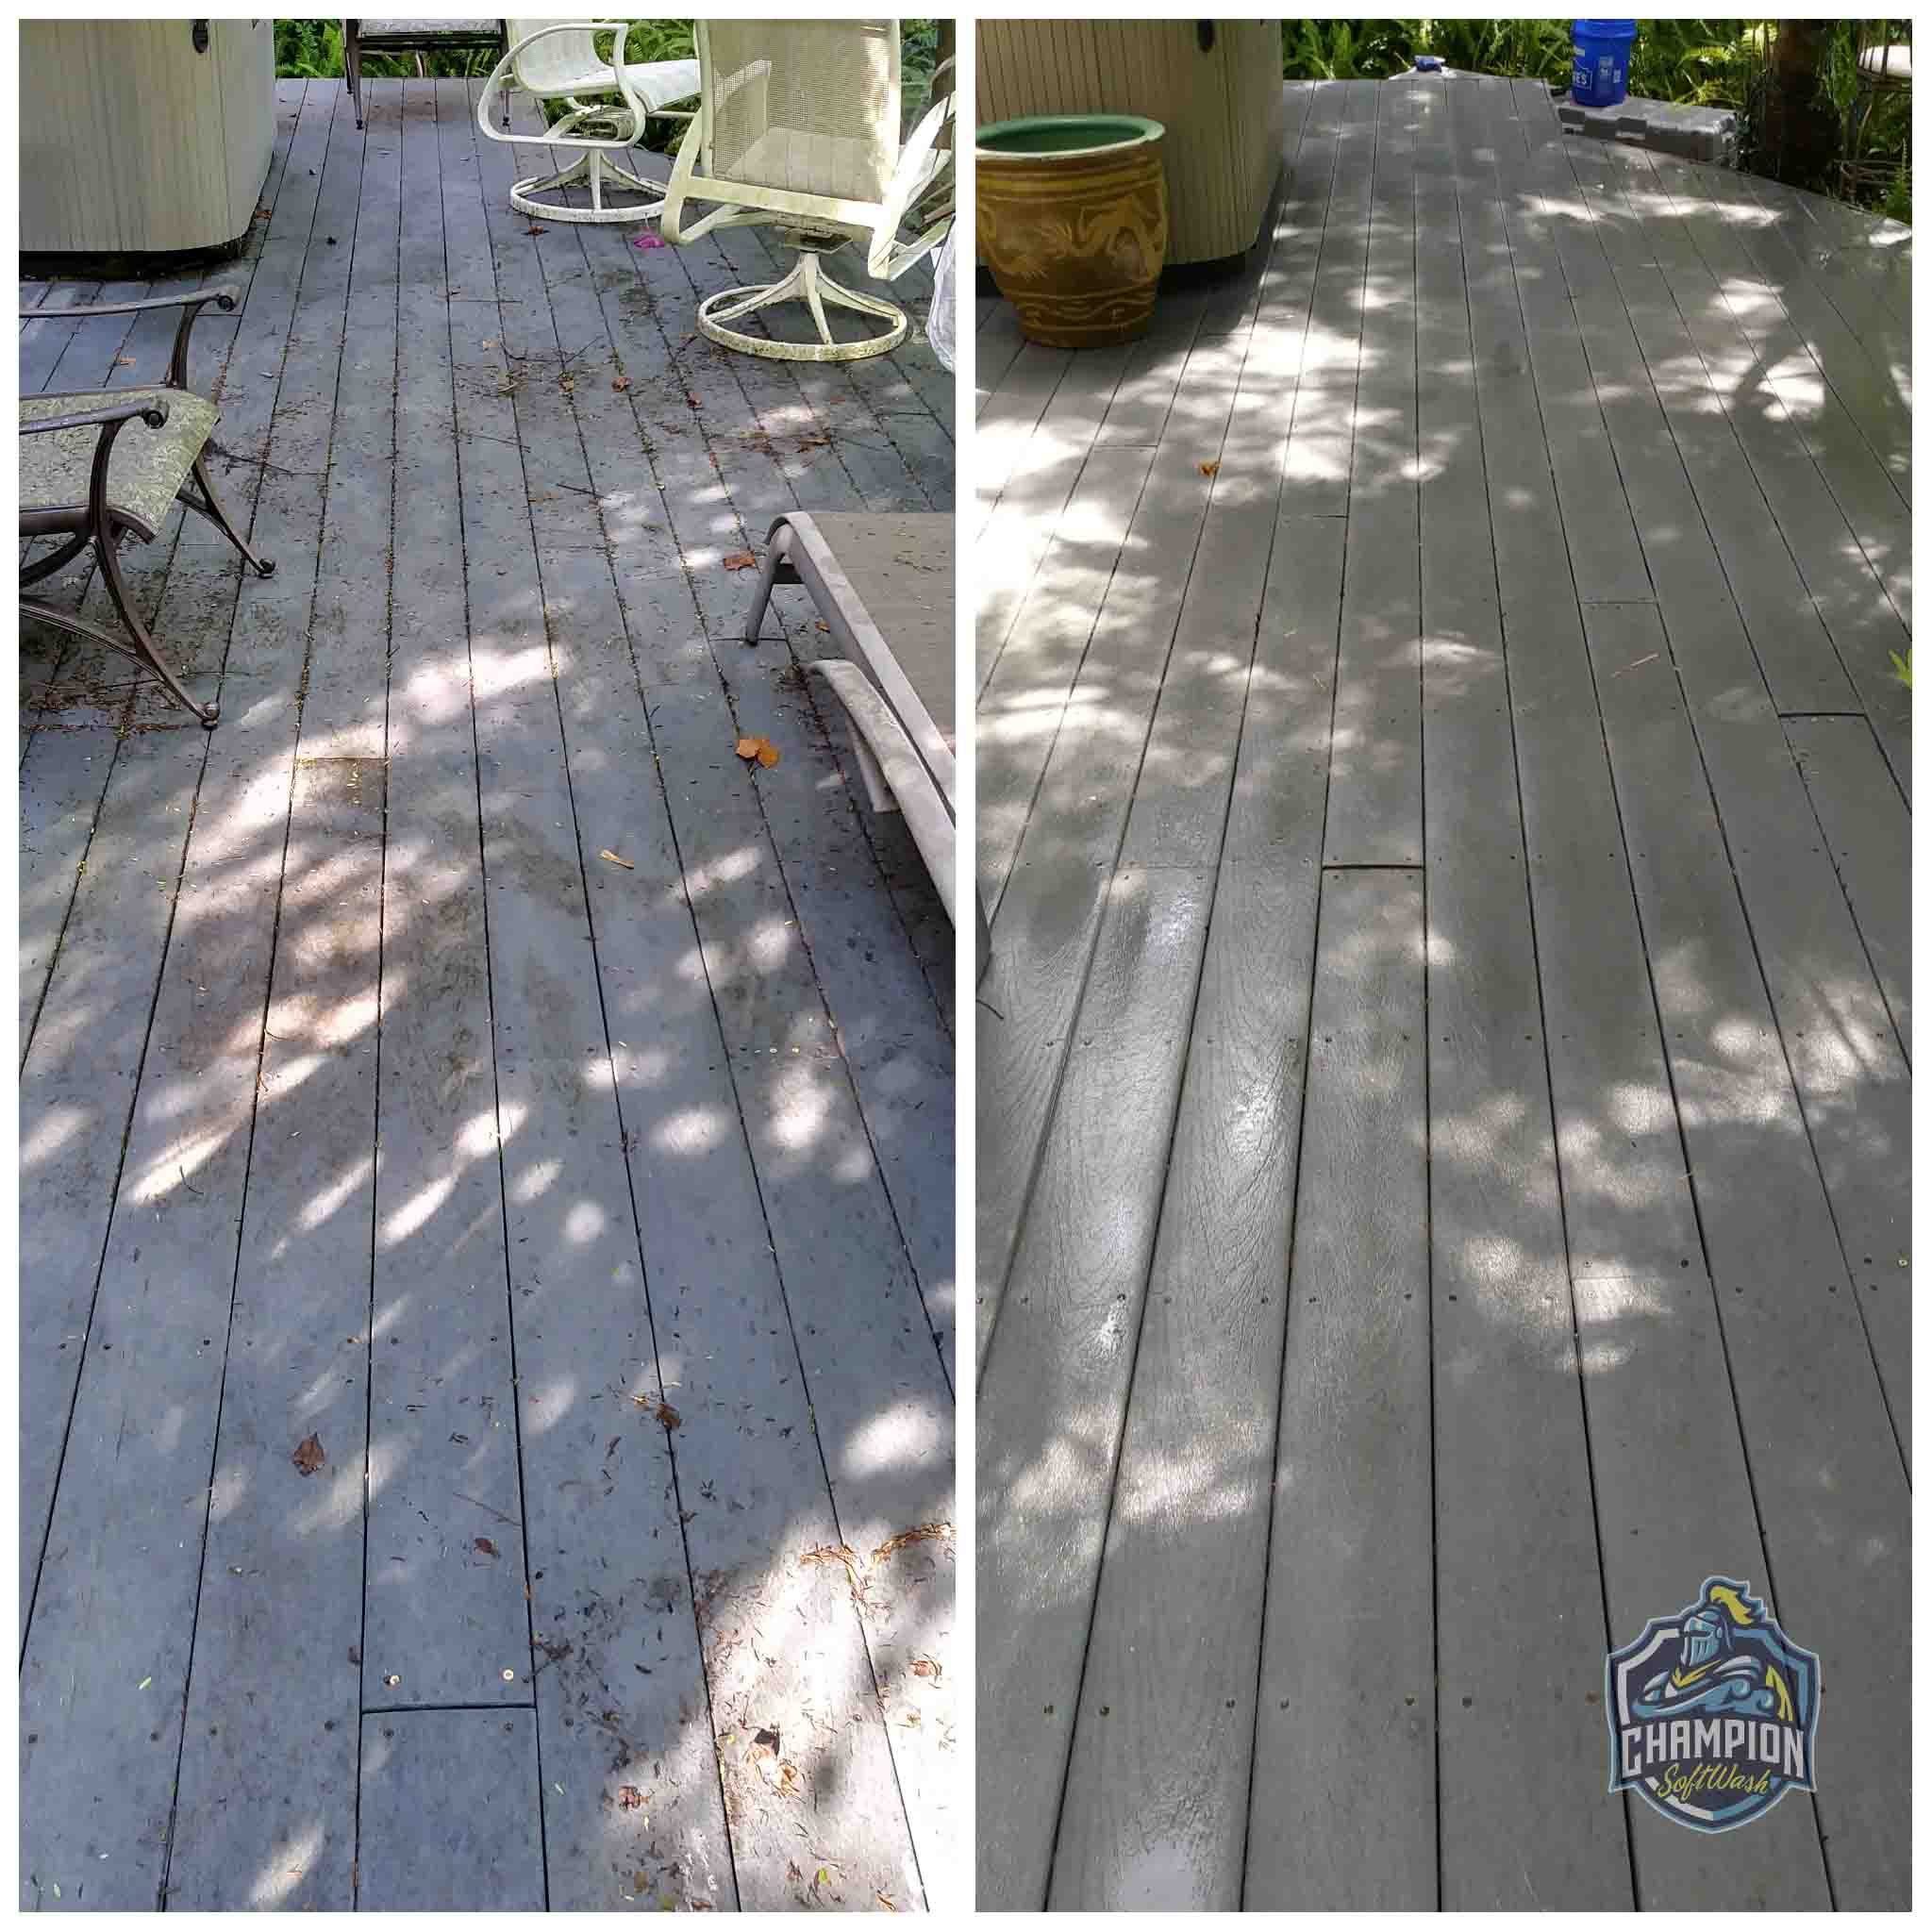 Trex Decking Cleaning in Florida Before and After, cool deck cleaning